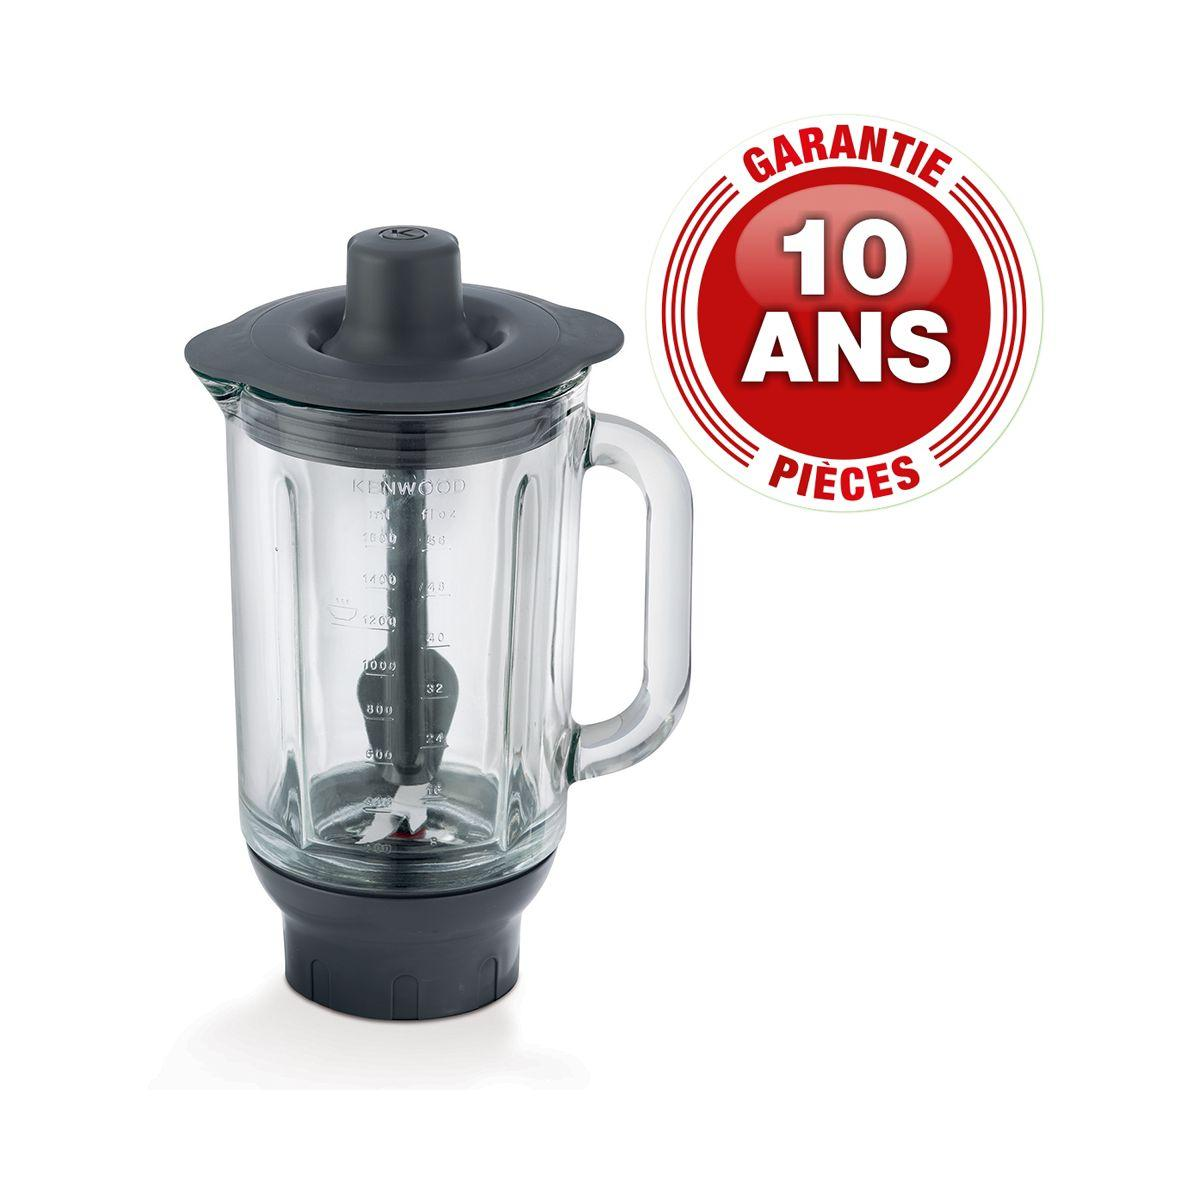 Blender kenwood kah37gl bol mixeur thermo resist 1.6l - livraison offerte : code premium (photo)